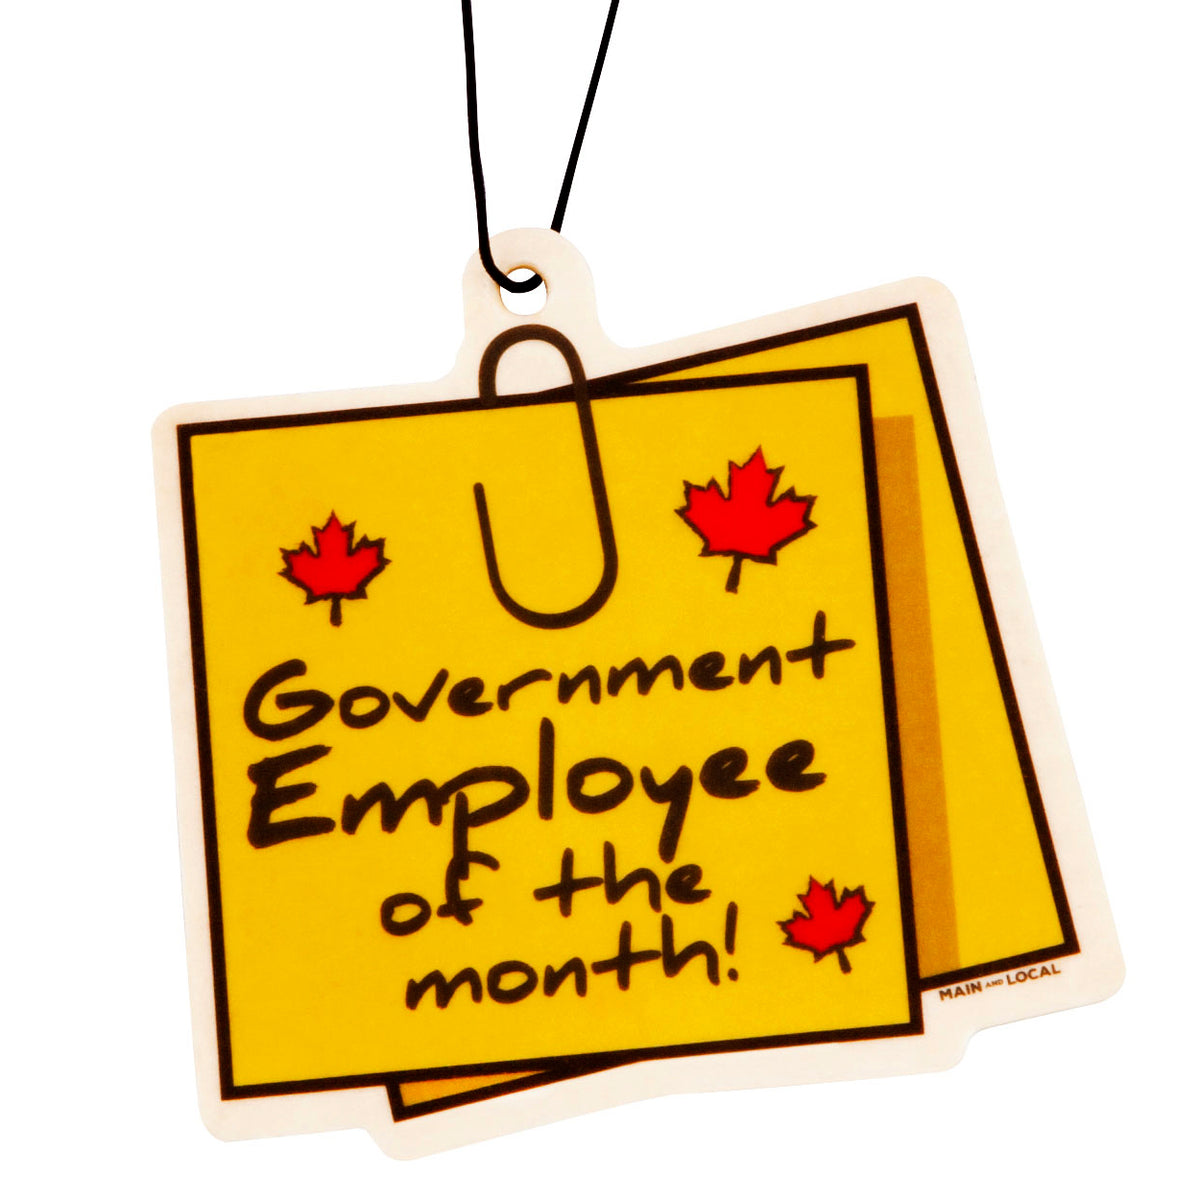 Gov't Employee of The Month Air Freshener - Main and Local